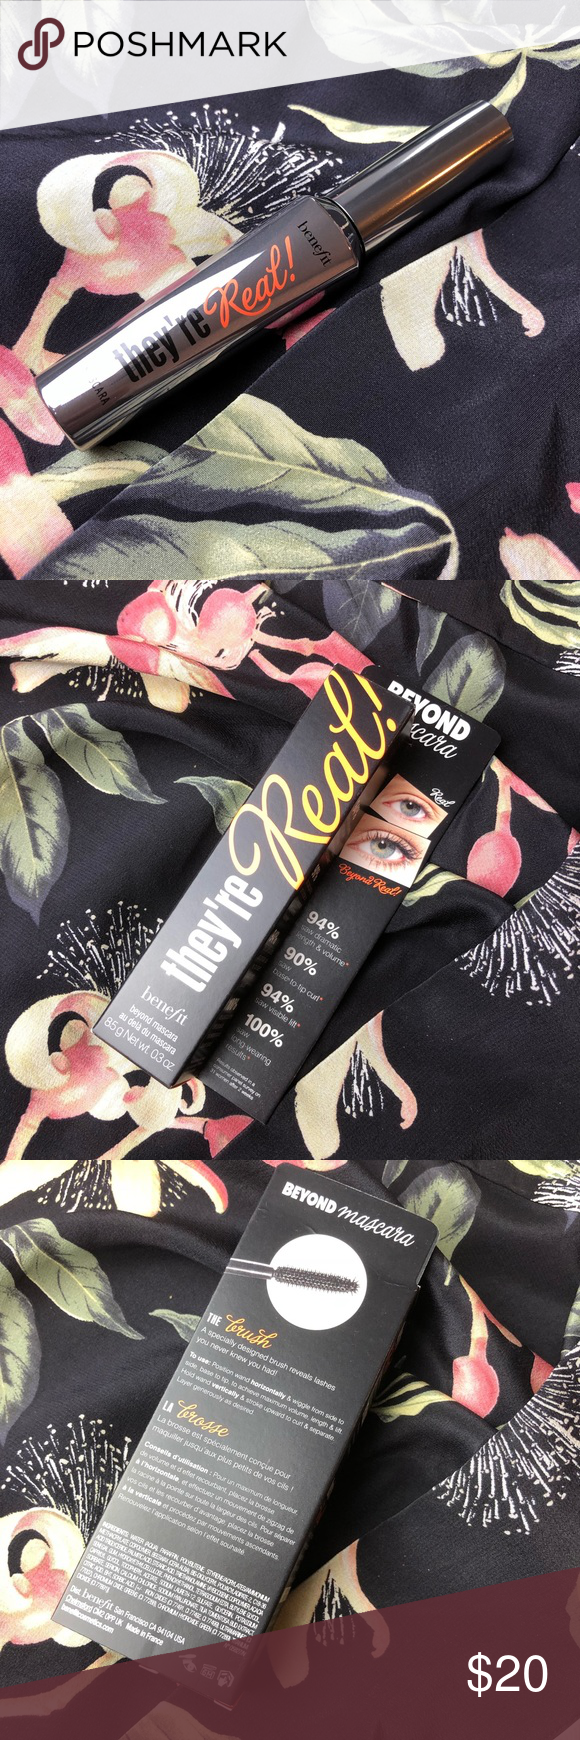 32bd5dbef3c Benefit they're real black mascara NIB NWT New in box/ with tags benefit  they're real mascara Black mascara never been used No traded Benefit Makeup  Mascara